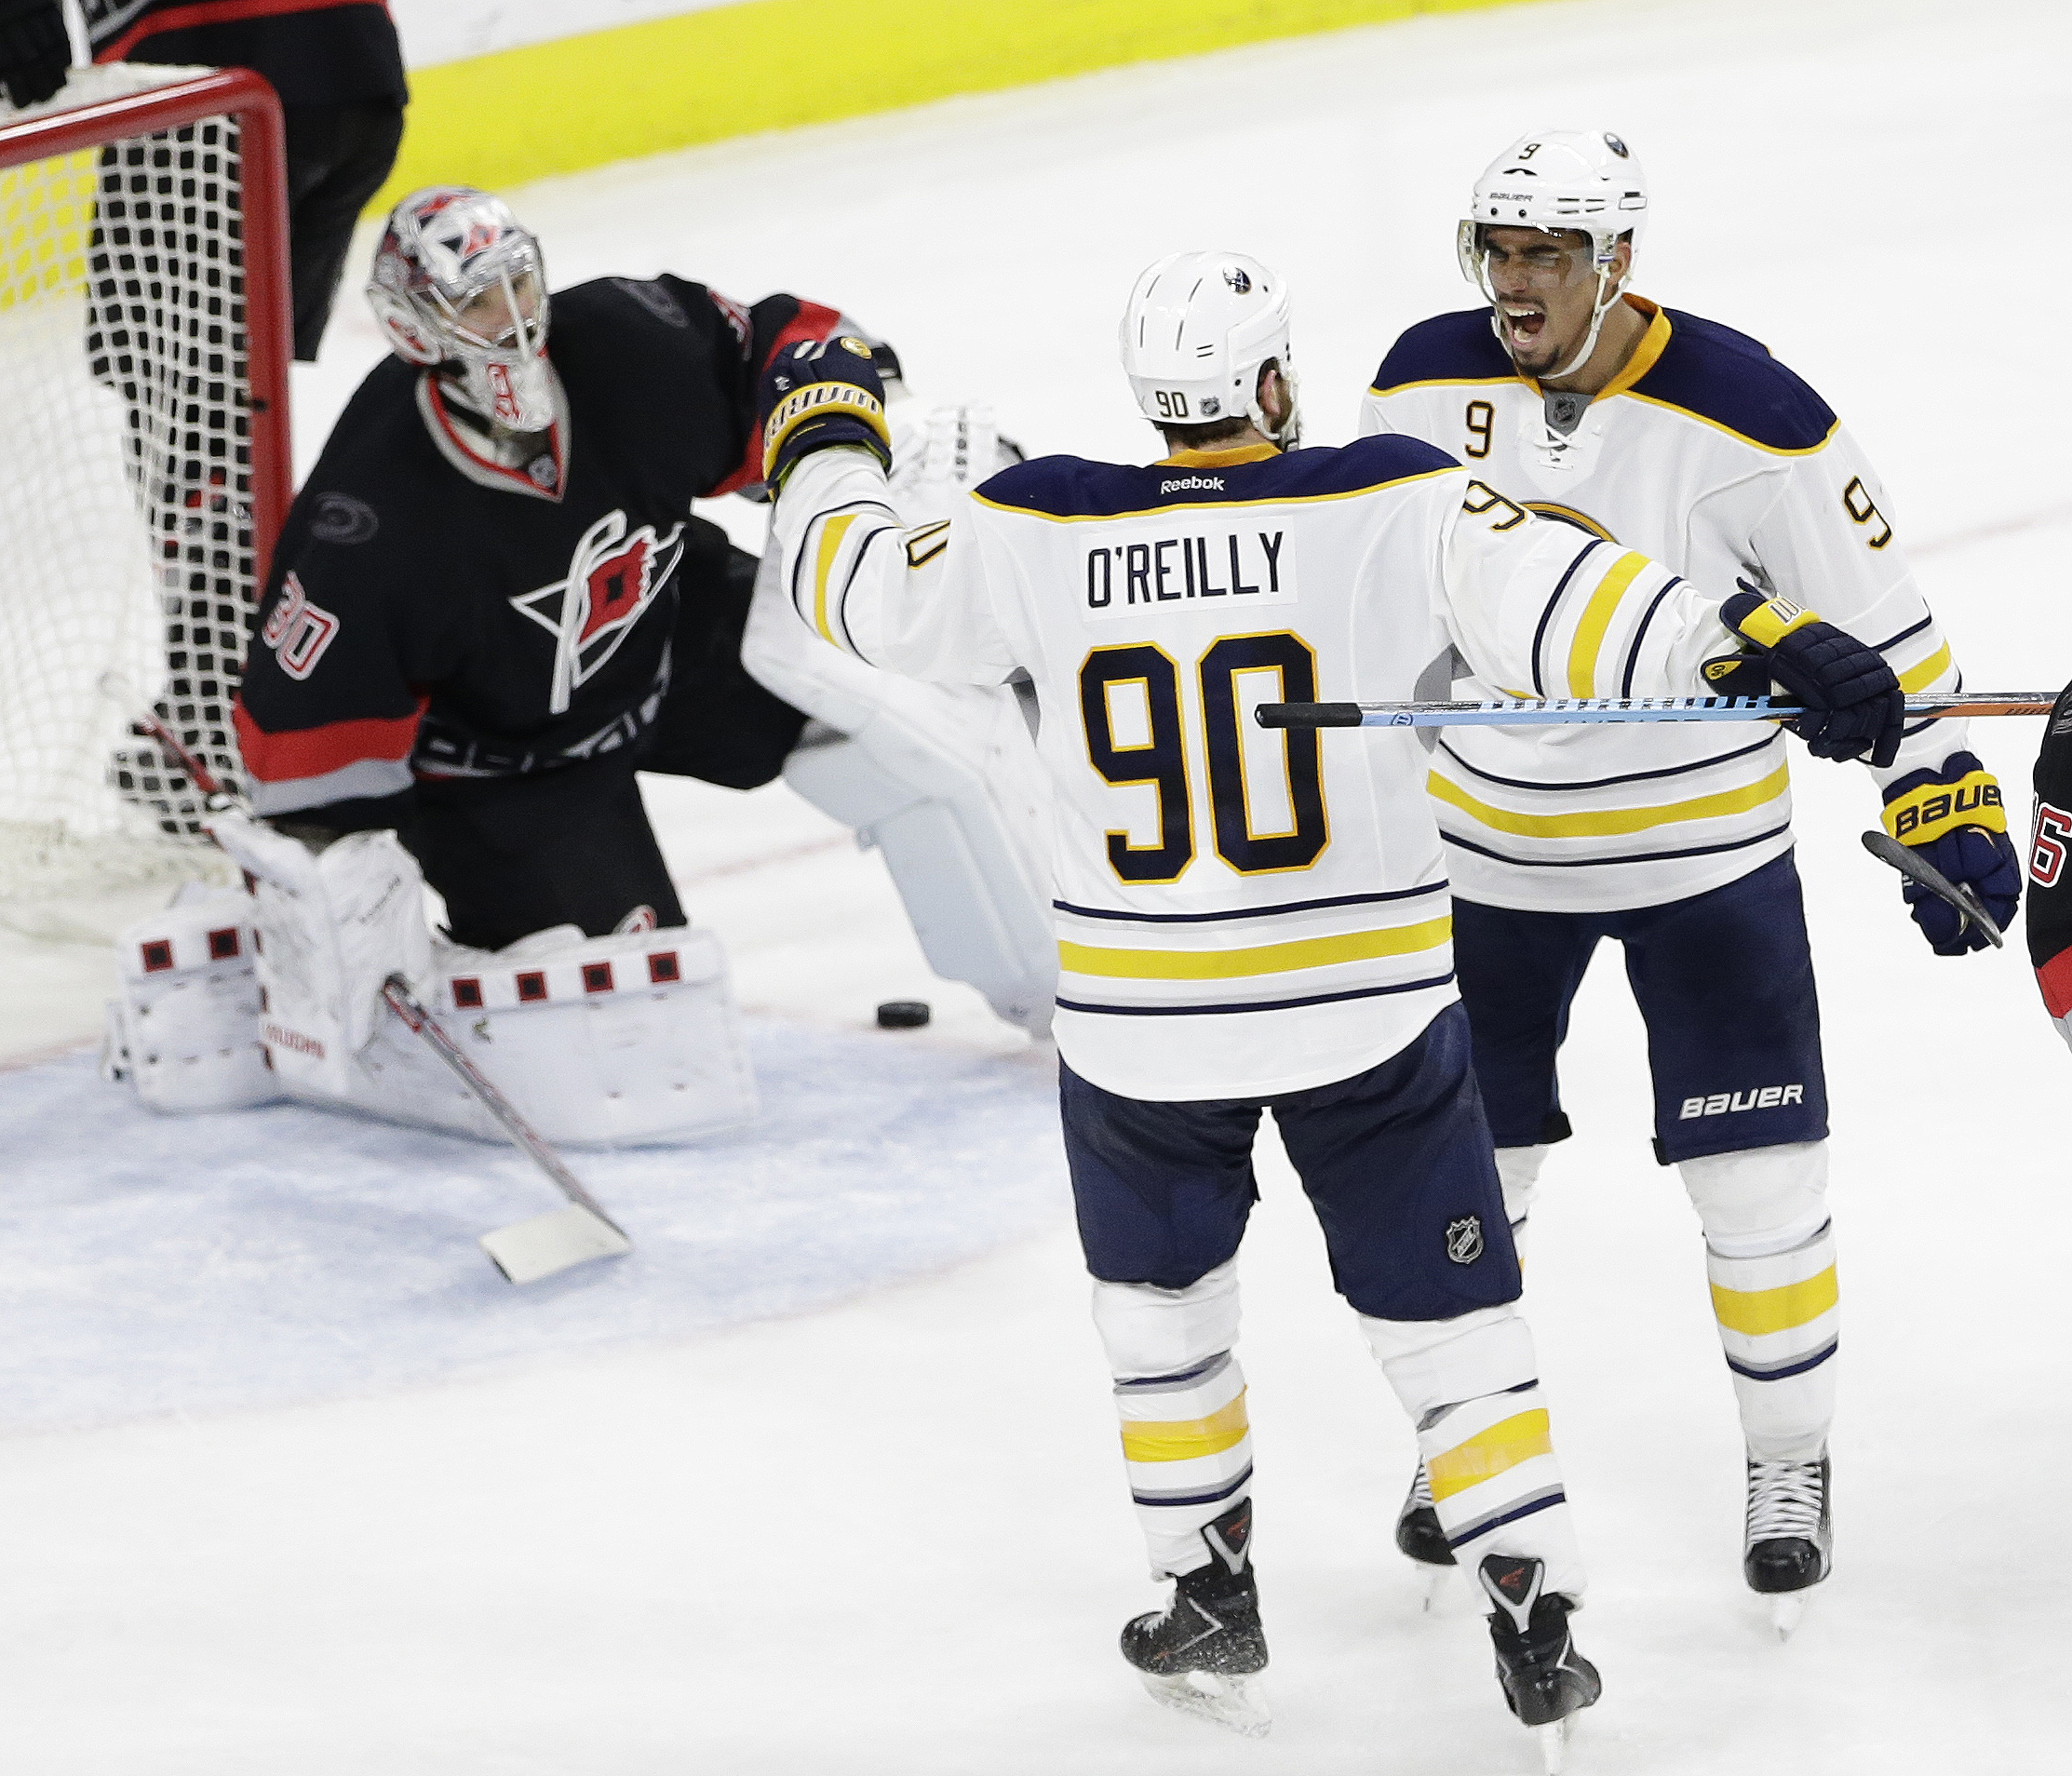 Buffalo Sabres' Ryan O'Reilly (90) congratulates Evander Kane (9) following Kane's goal against the Carolina Hurricanes during the third period of an NHL hockey game in Raleigh, N.C., Tuesday, March 22, 2016. Buffalo won 3-2. Carolina Hurricanes goalie Ca